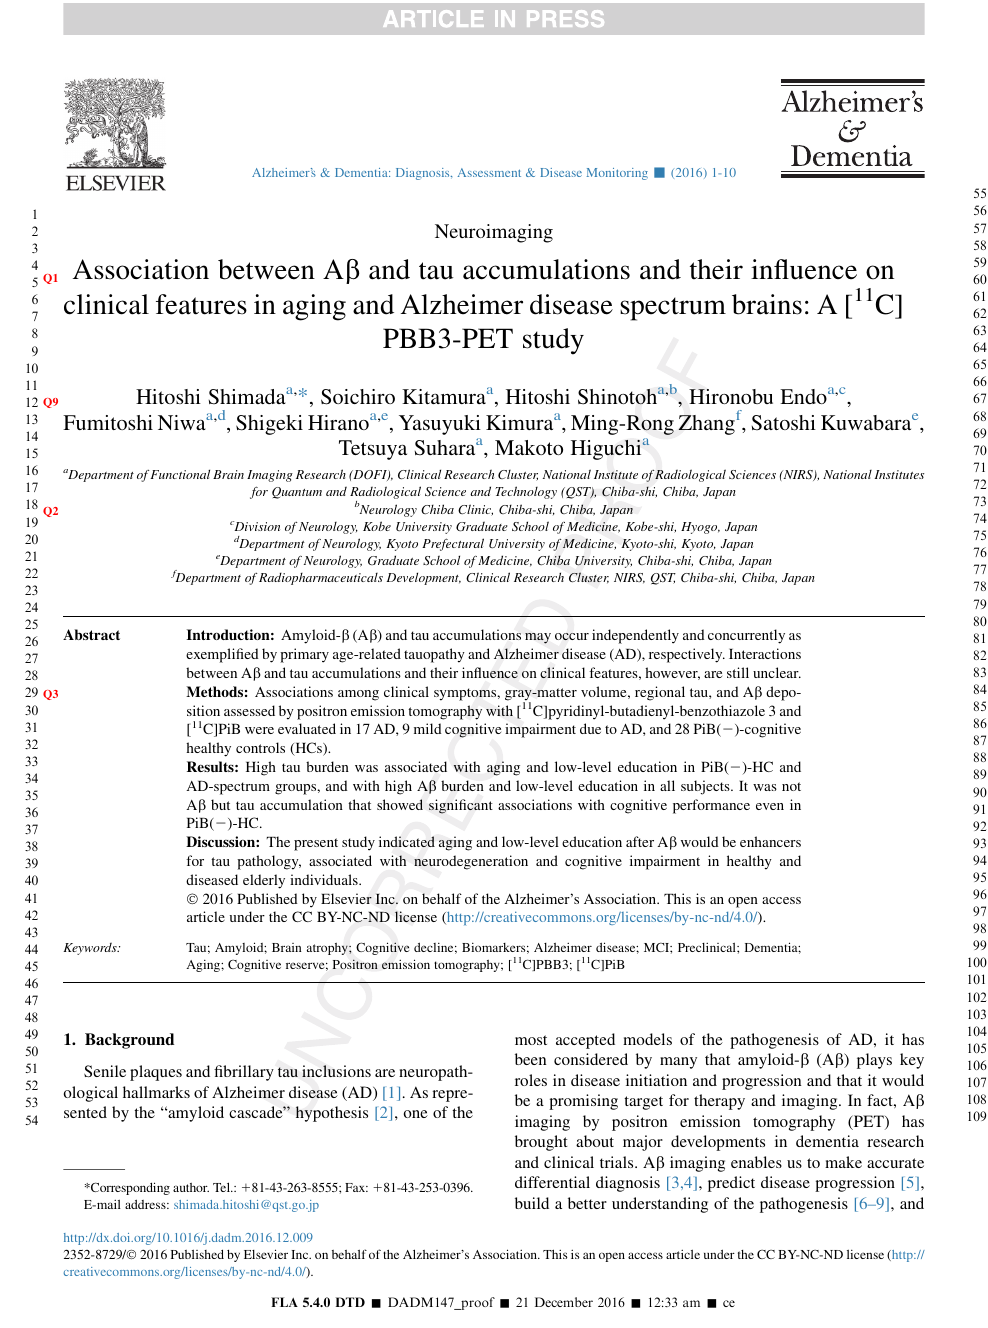 Association between Aβ and tau accumulations and their